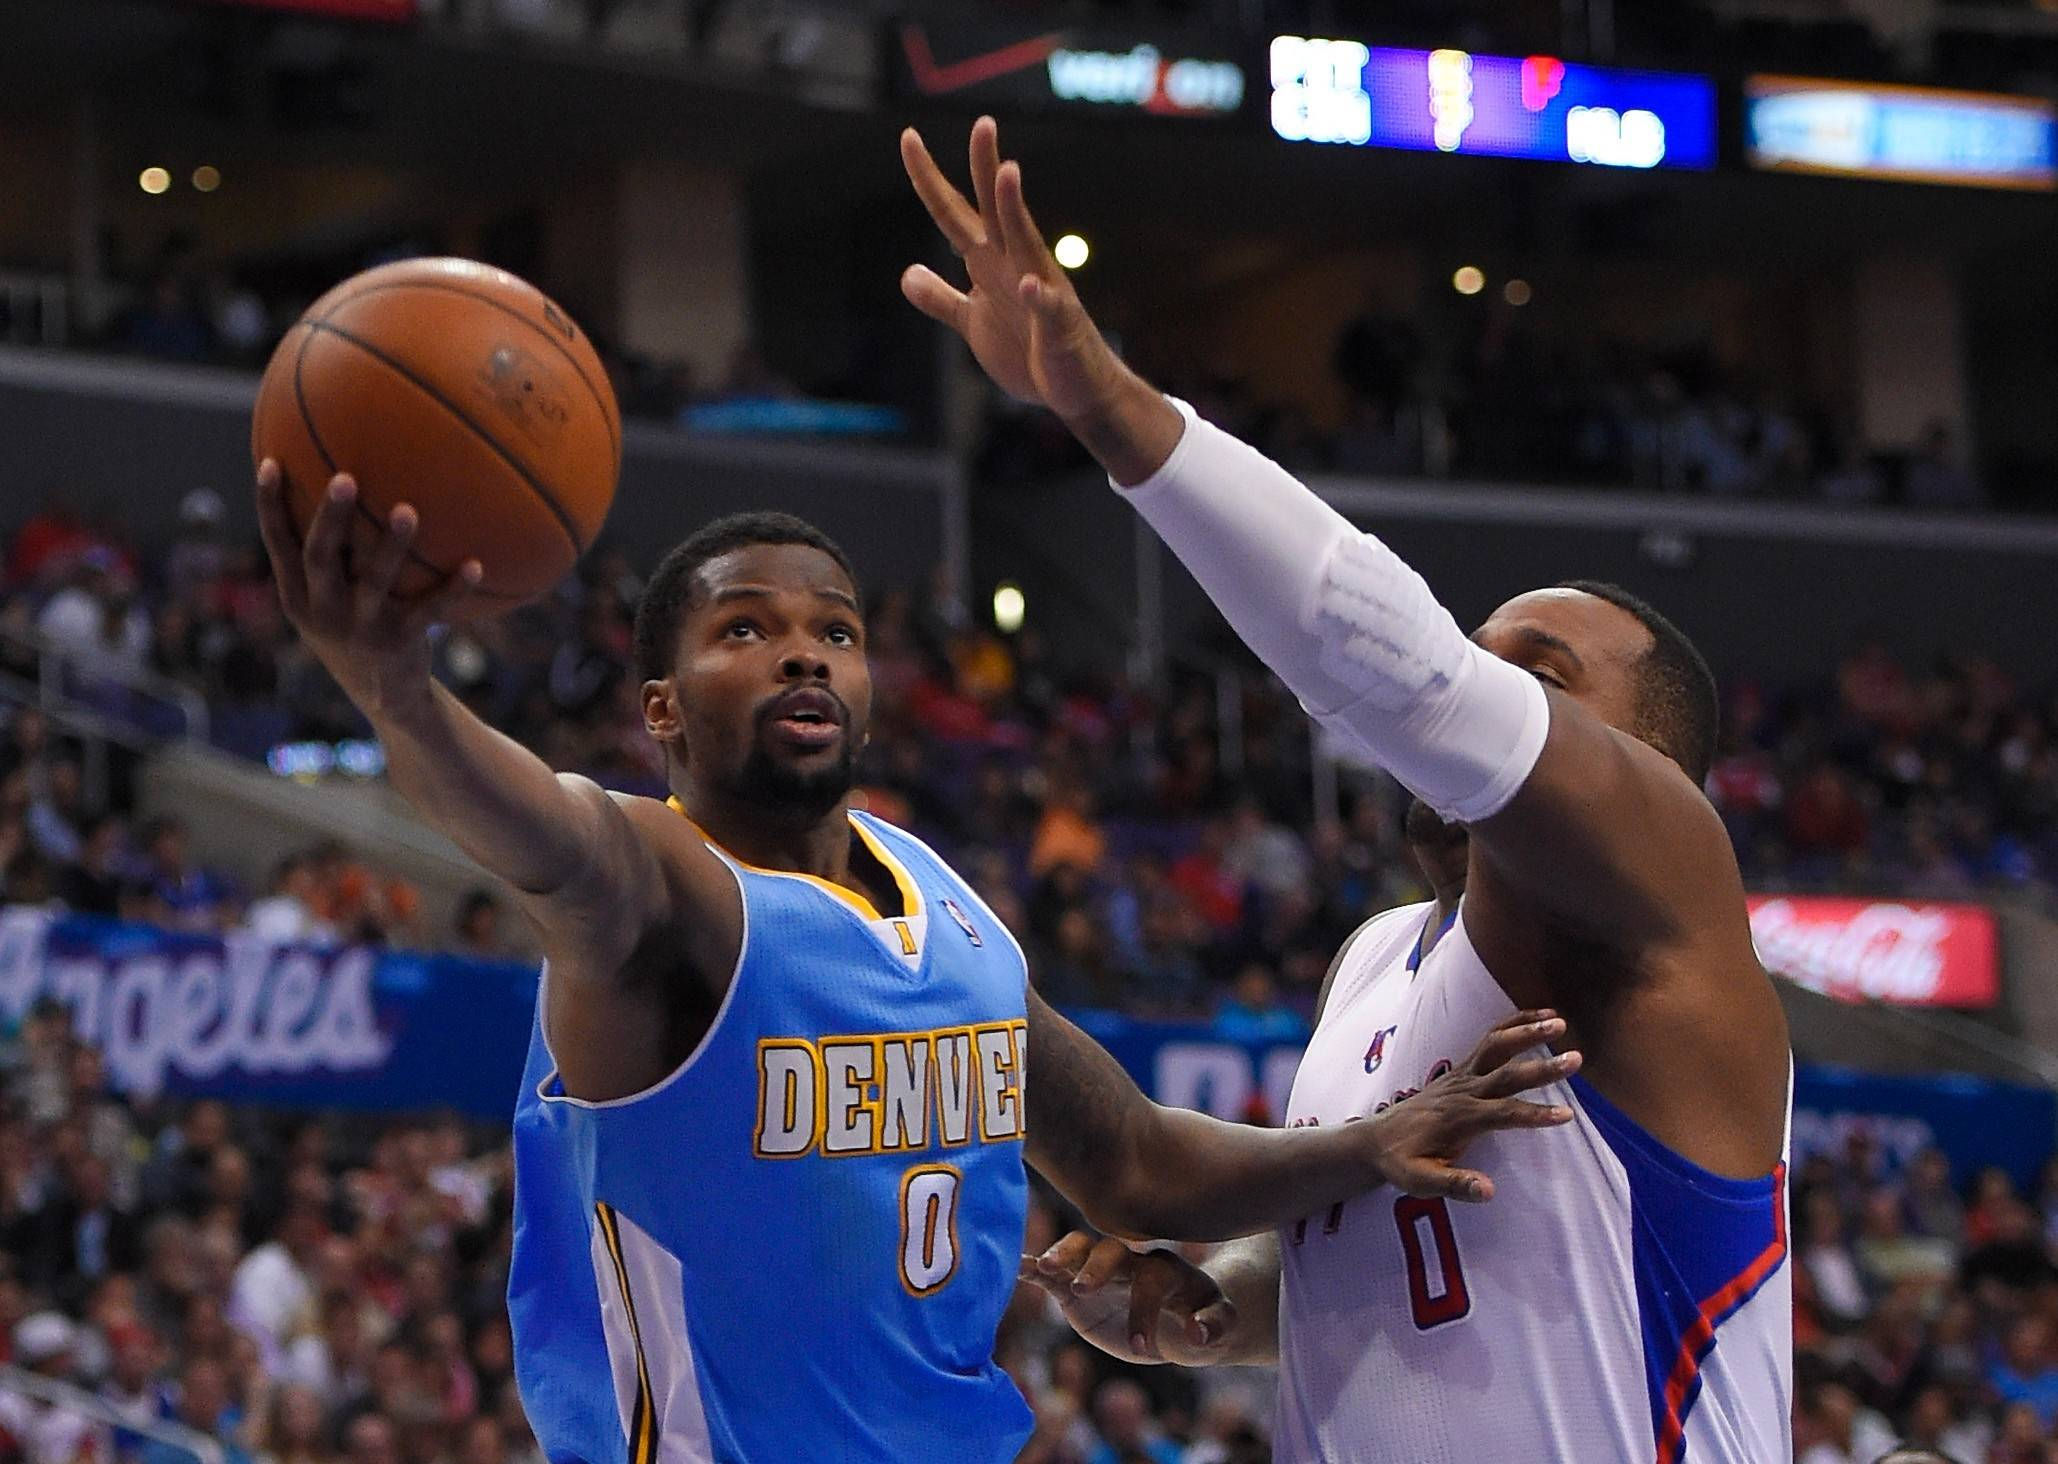 Point guard Aaron Brooks, who finished last season in Denver, averaging 11.9 points and 5.2 assists, has signed with the Bulls.